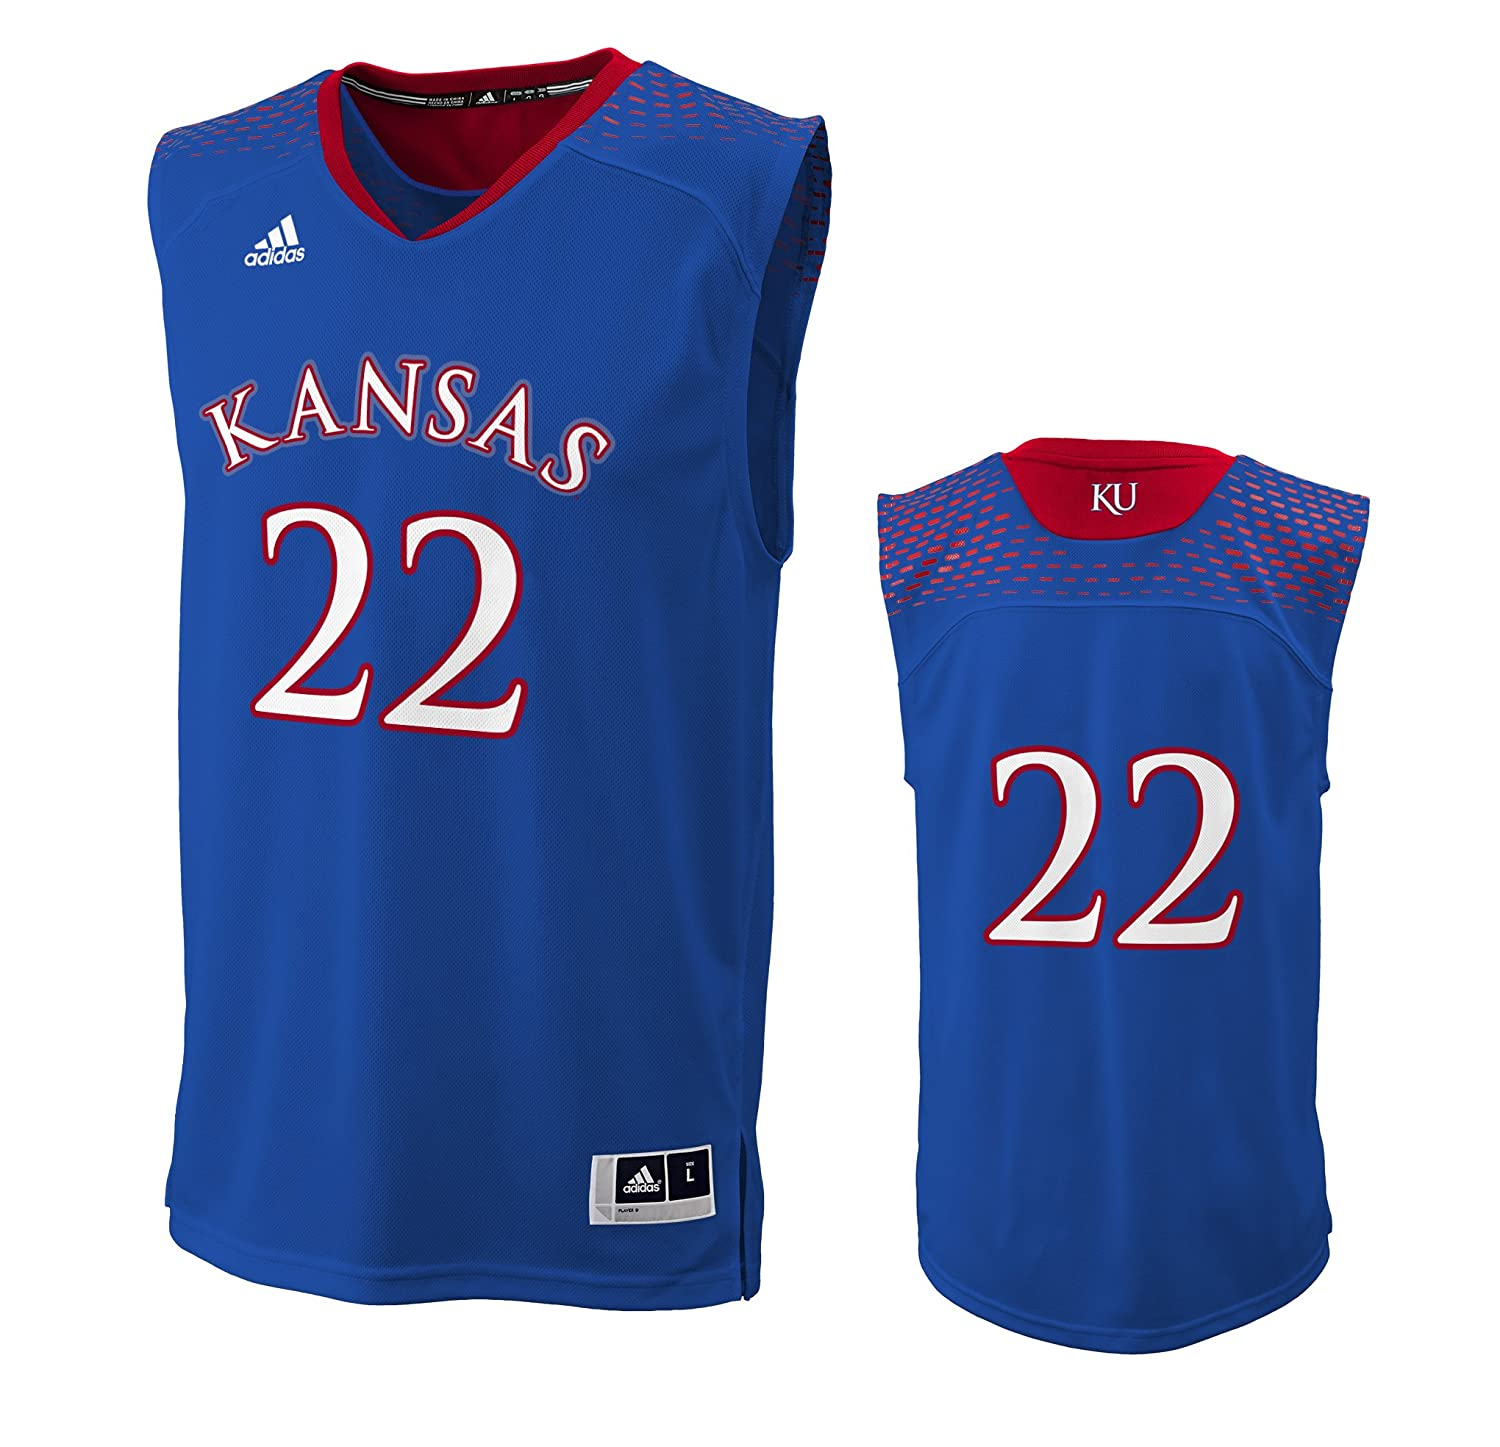 a52254d7732 ... get amazon andrew wiggins 22 kansas jayhawks adidas youth blue replica  jersey s c7ce7 96a30